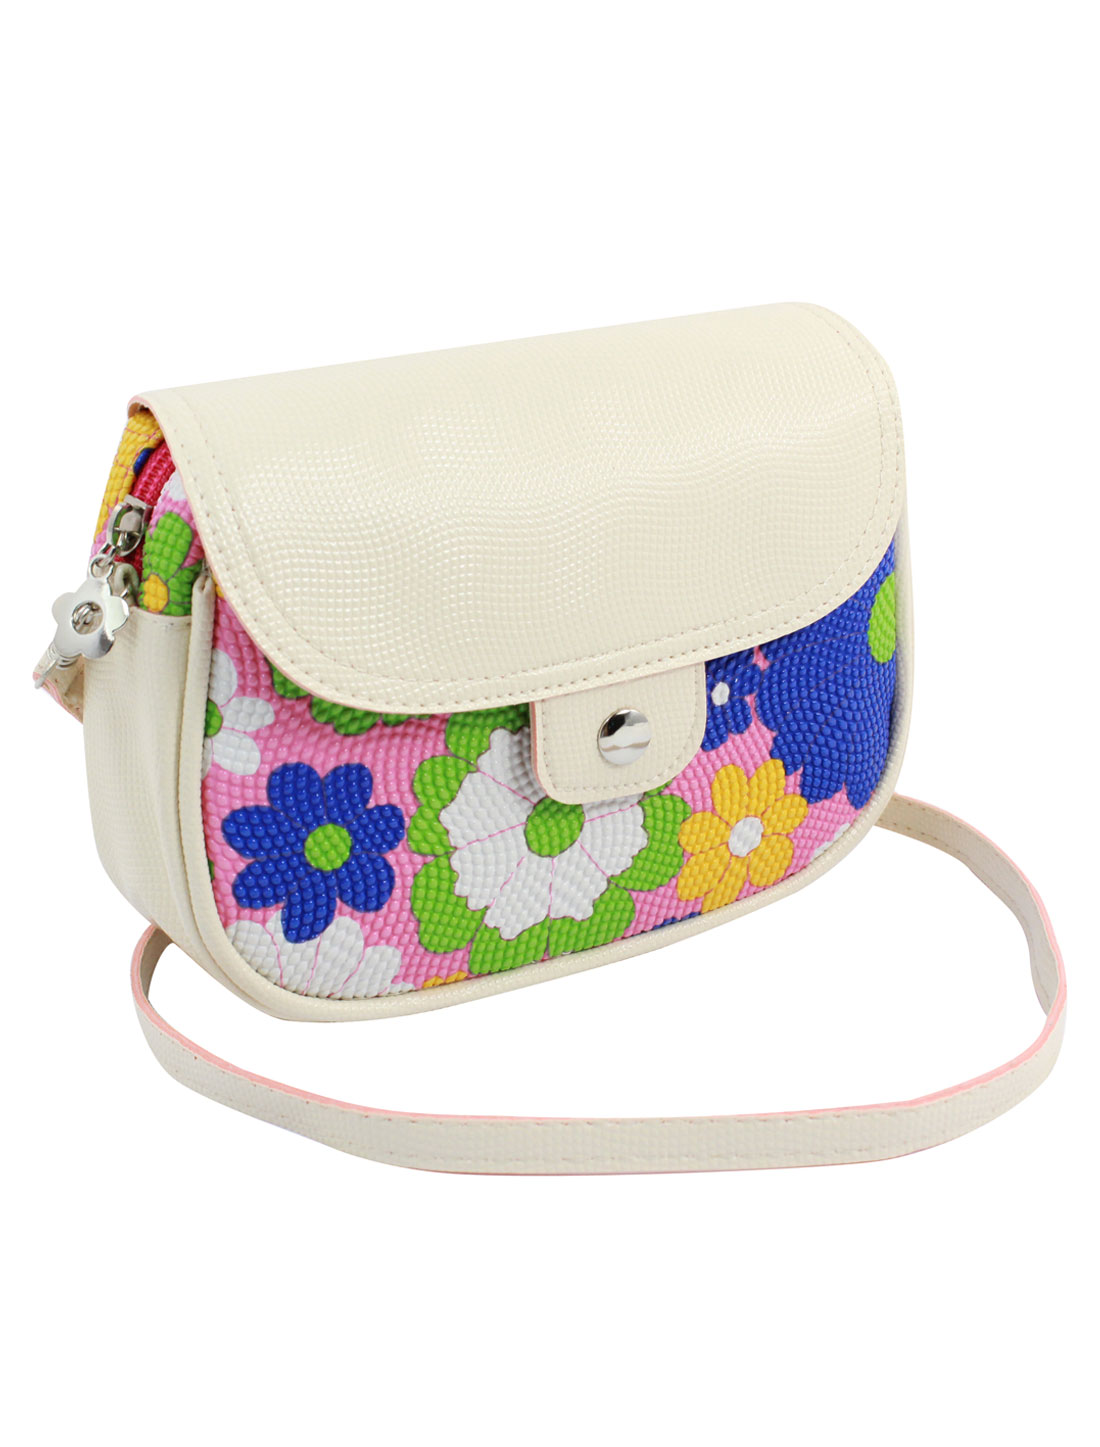 Women 2 Pockets Magnet Button Zipper Closure Floral Print Faux Leather Wallet Purse Bag Blue Green Pink w Shoulder Strap